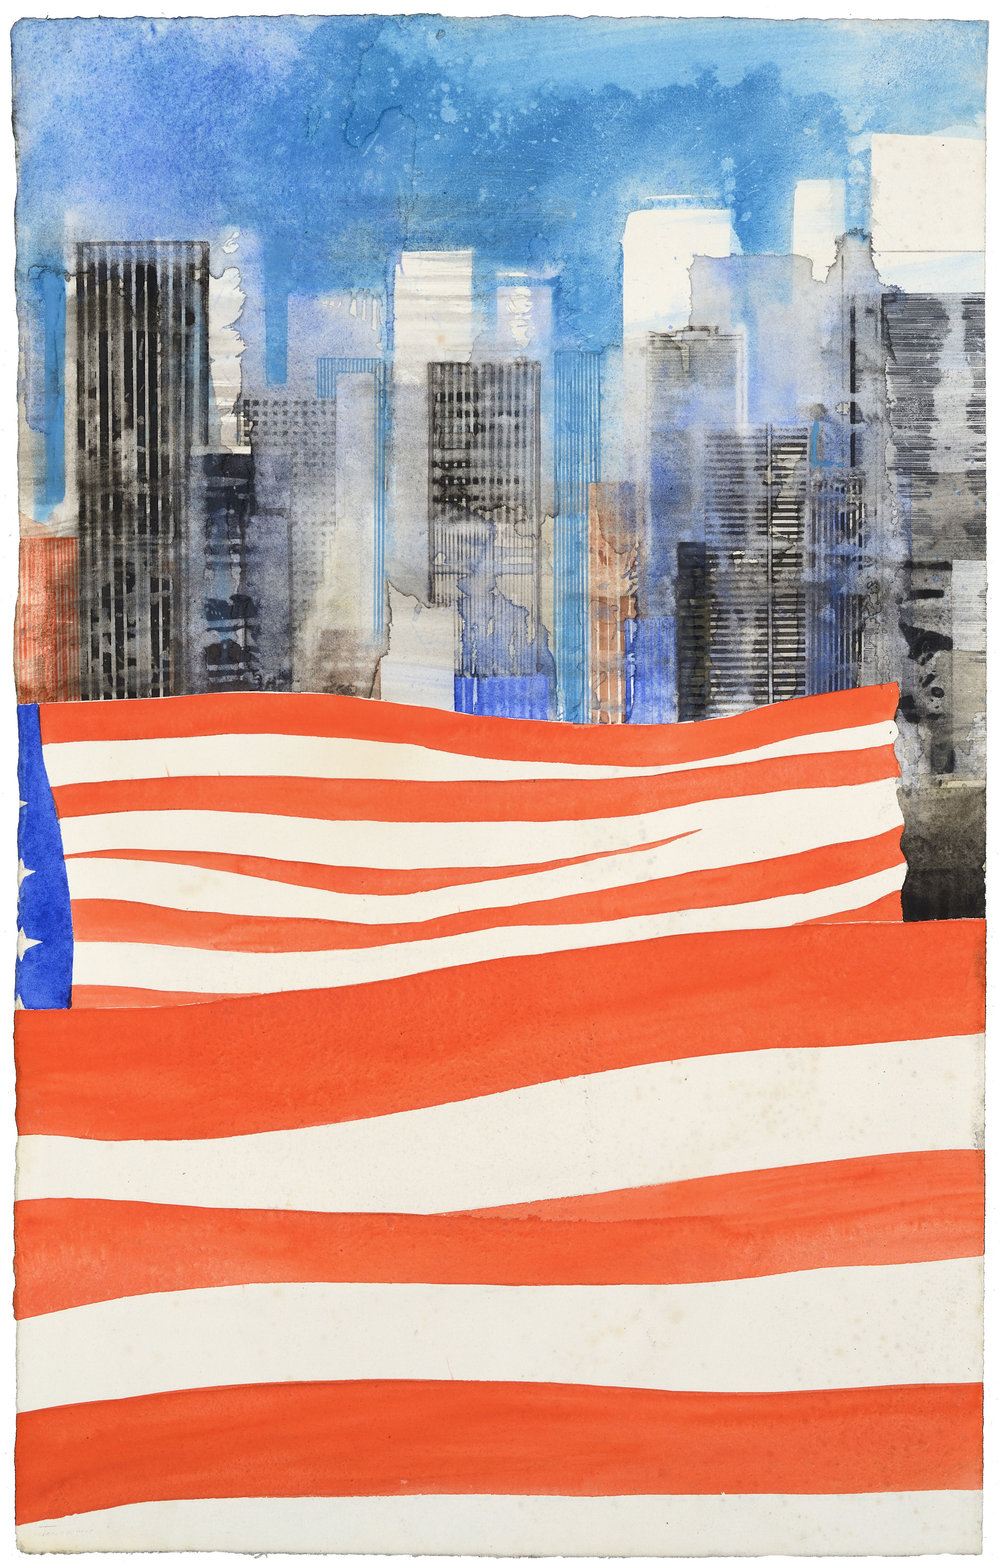 US Flag V, watercolor, 51 x 31 cm, 20 x 12 in, 2015